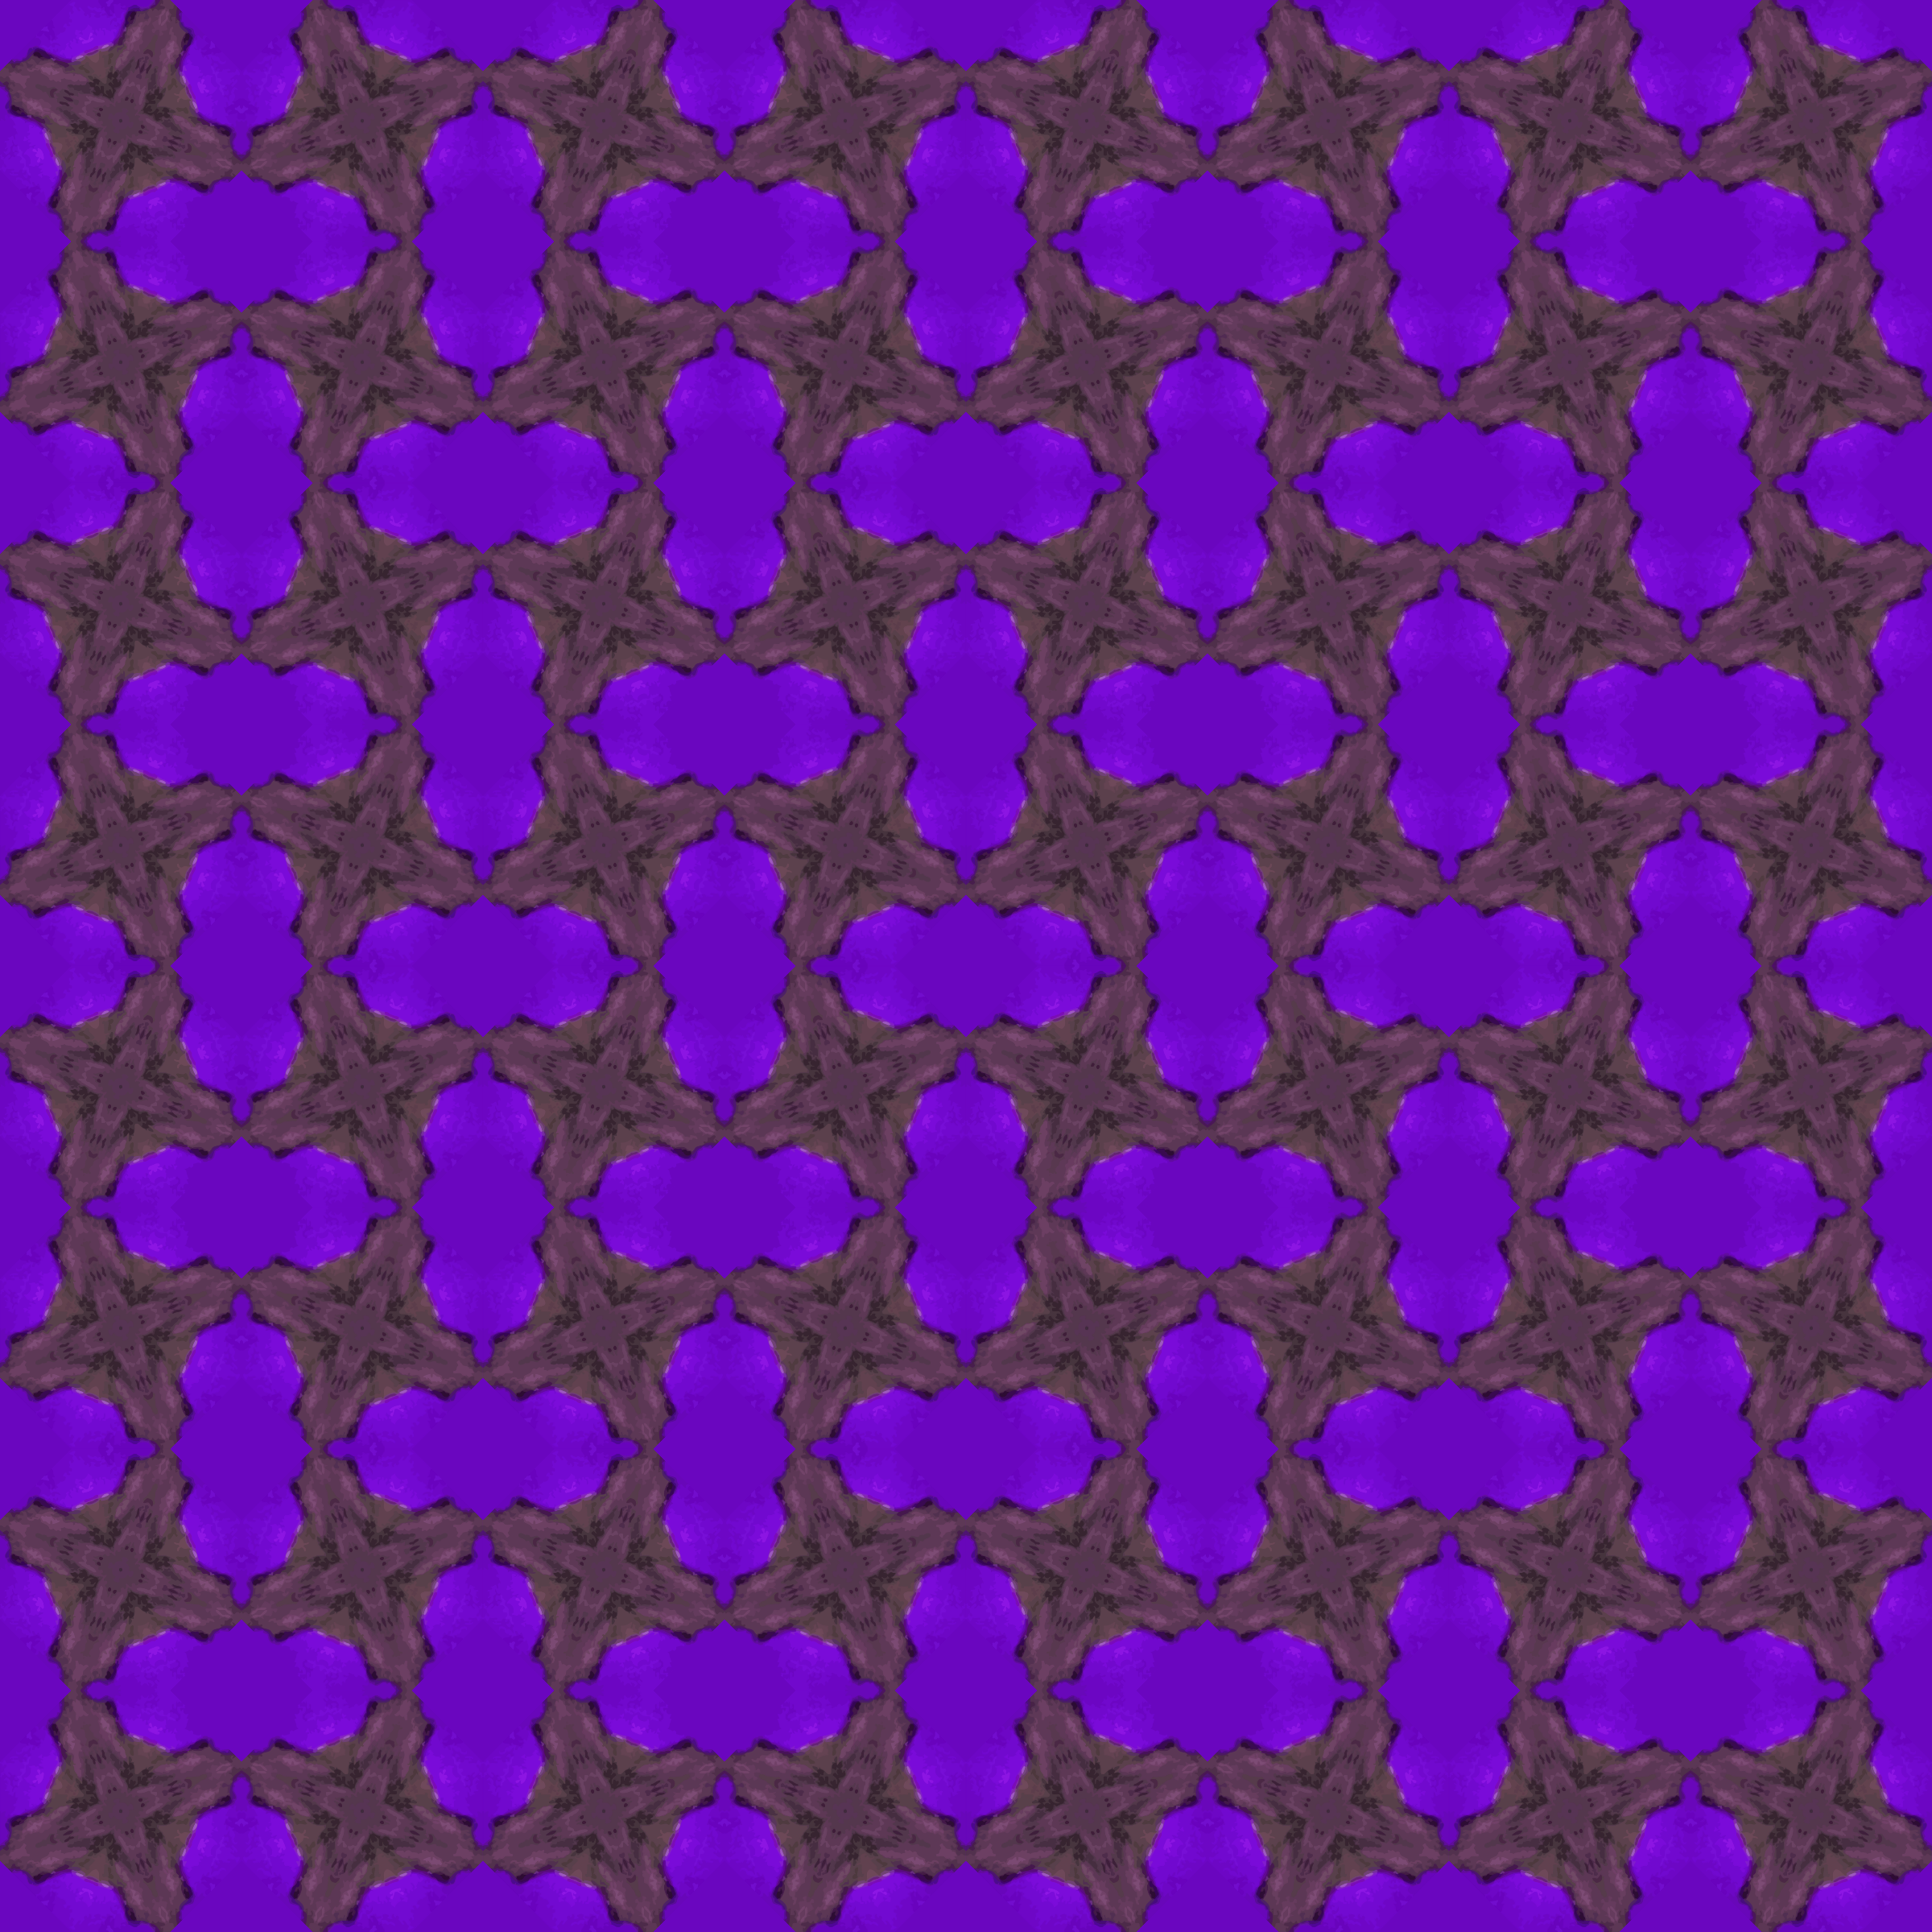 Background pattern 182 (colour 3) by Firkin